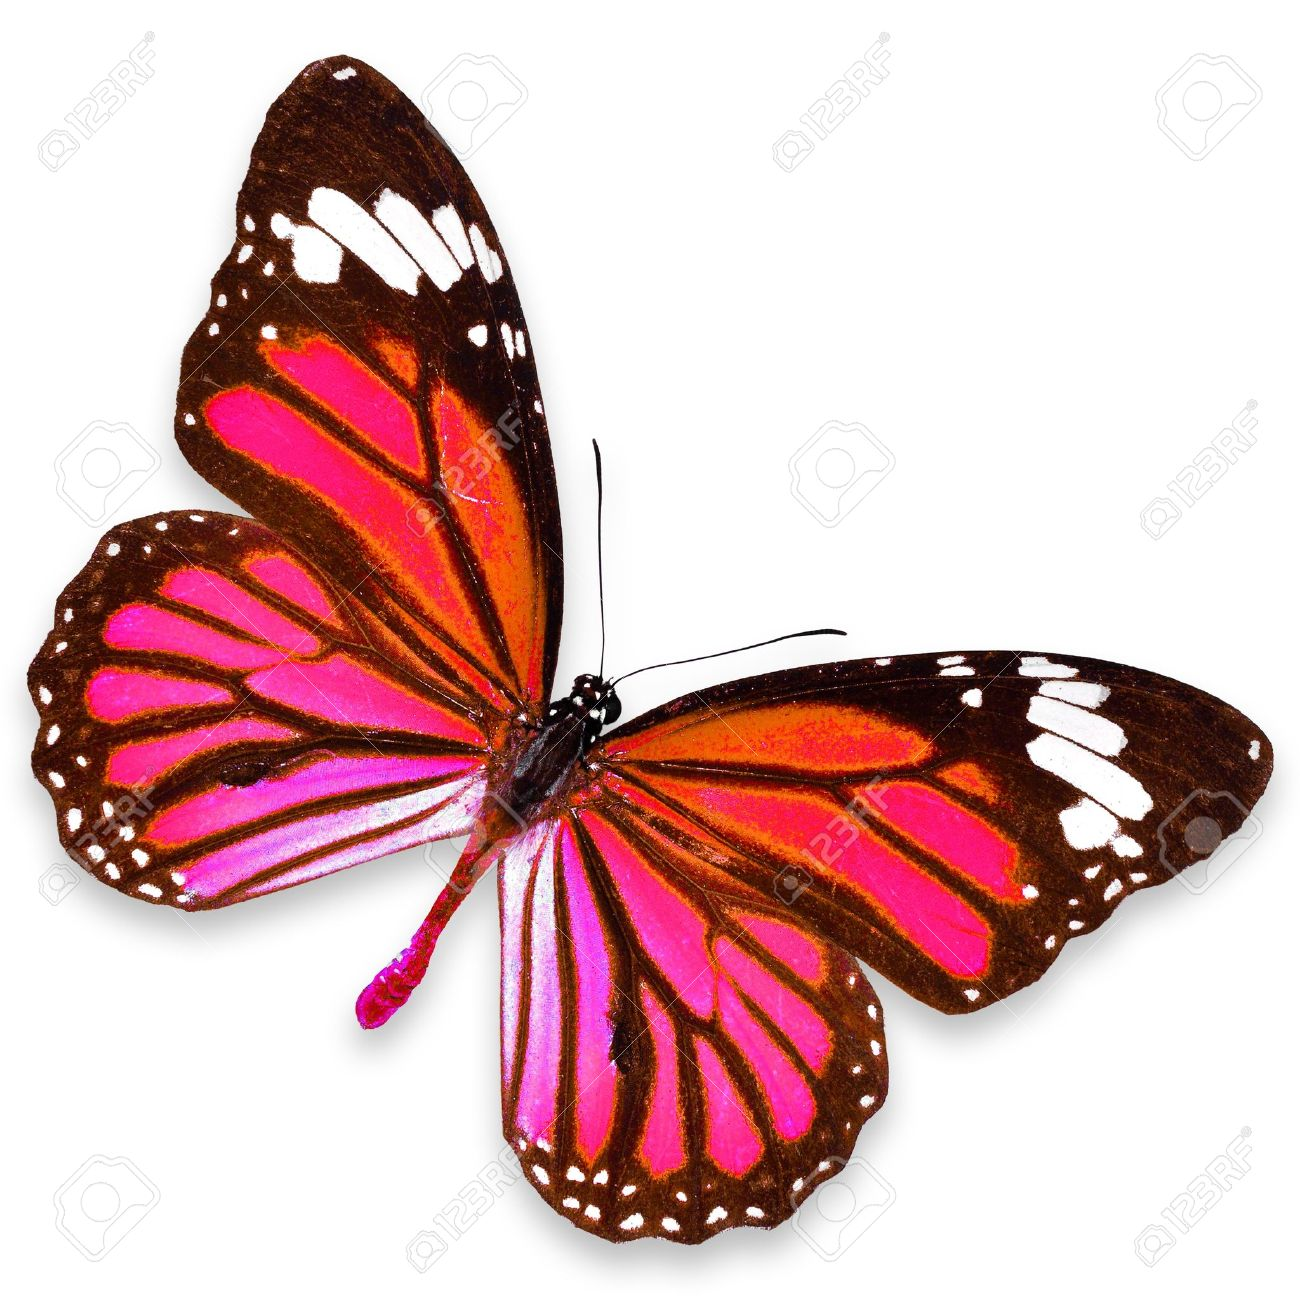 pink butterfly stock photos royalty free pink butterfly images